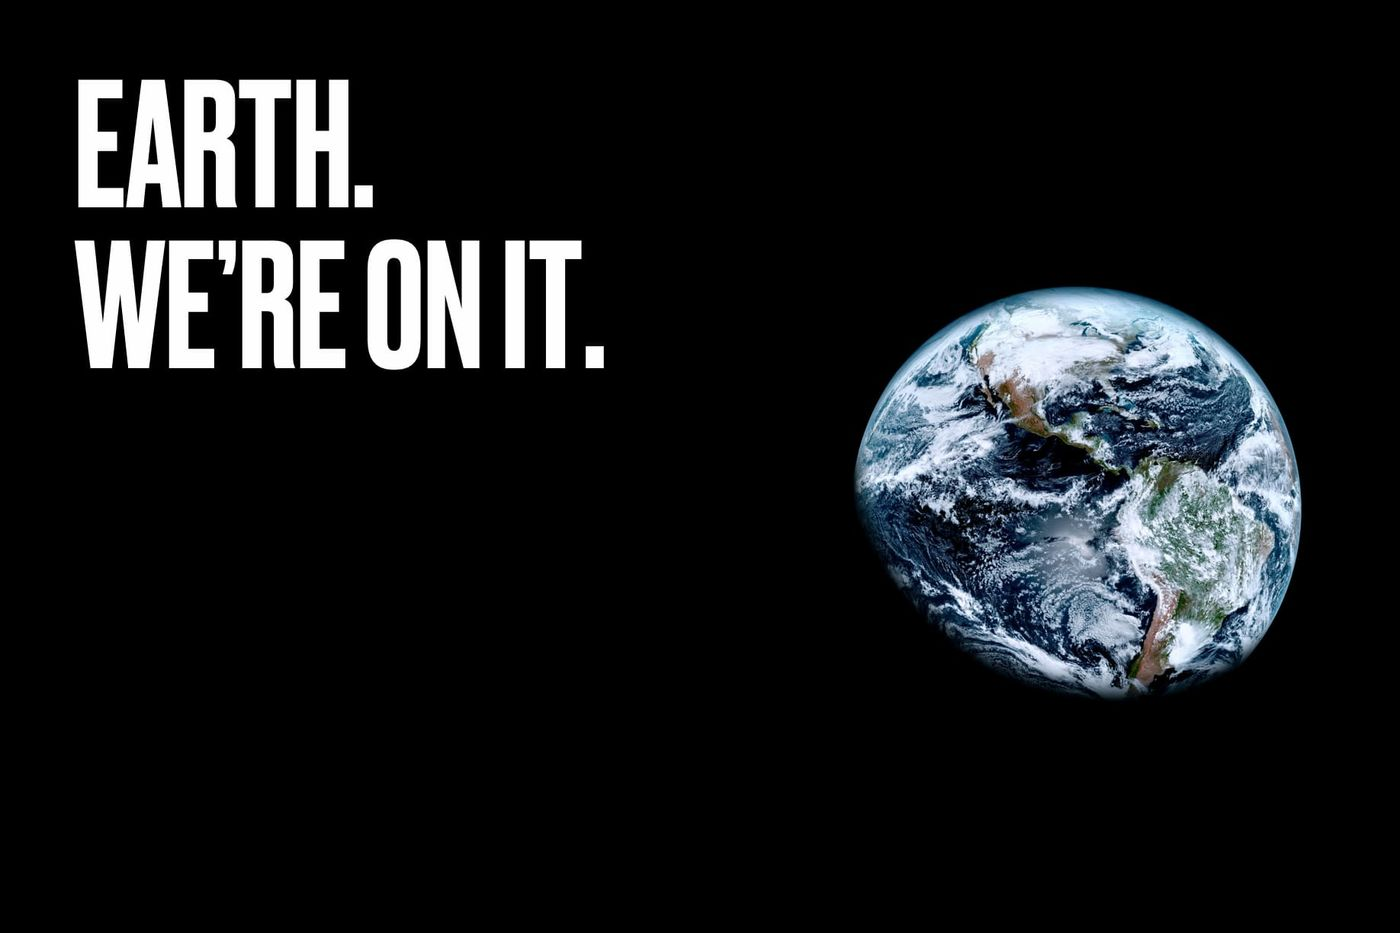 "Phase ""Earth. We're On It."" displayed on a black background, with an image of the earth from space shown to the right of the text."